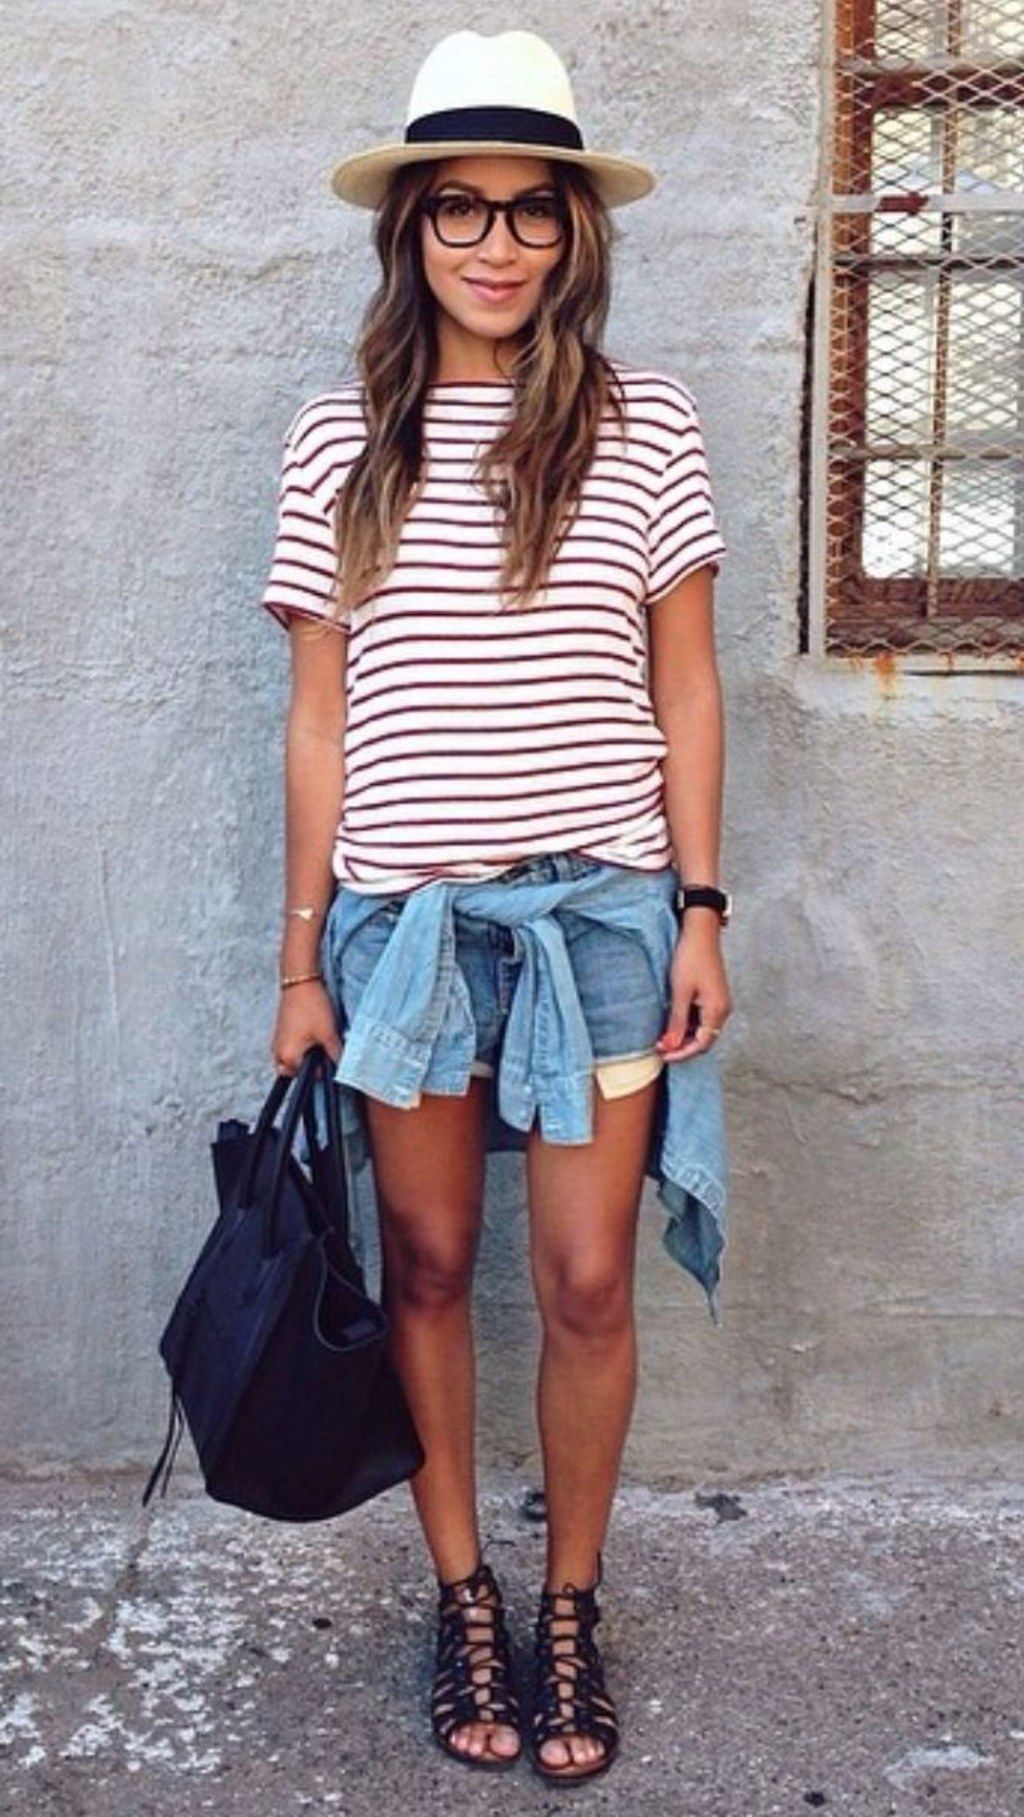 Stylish July th Outfit Ideas You Can Also Wear Any Time of the Year